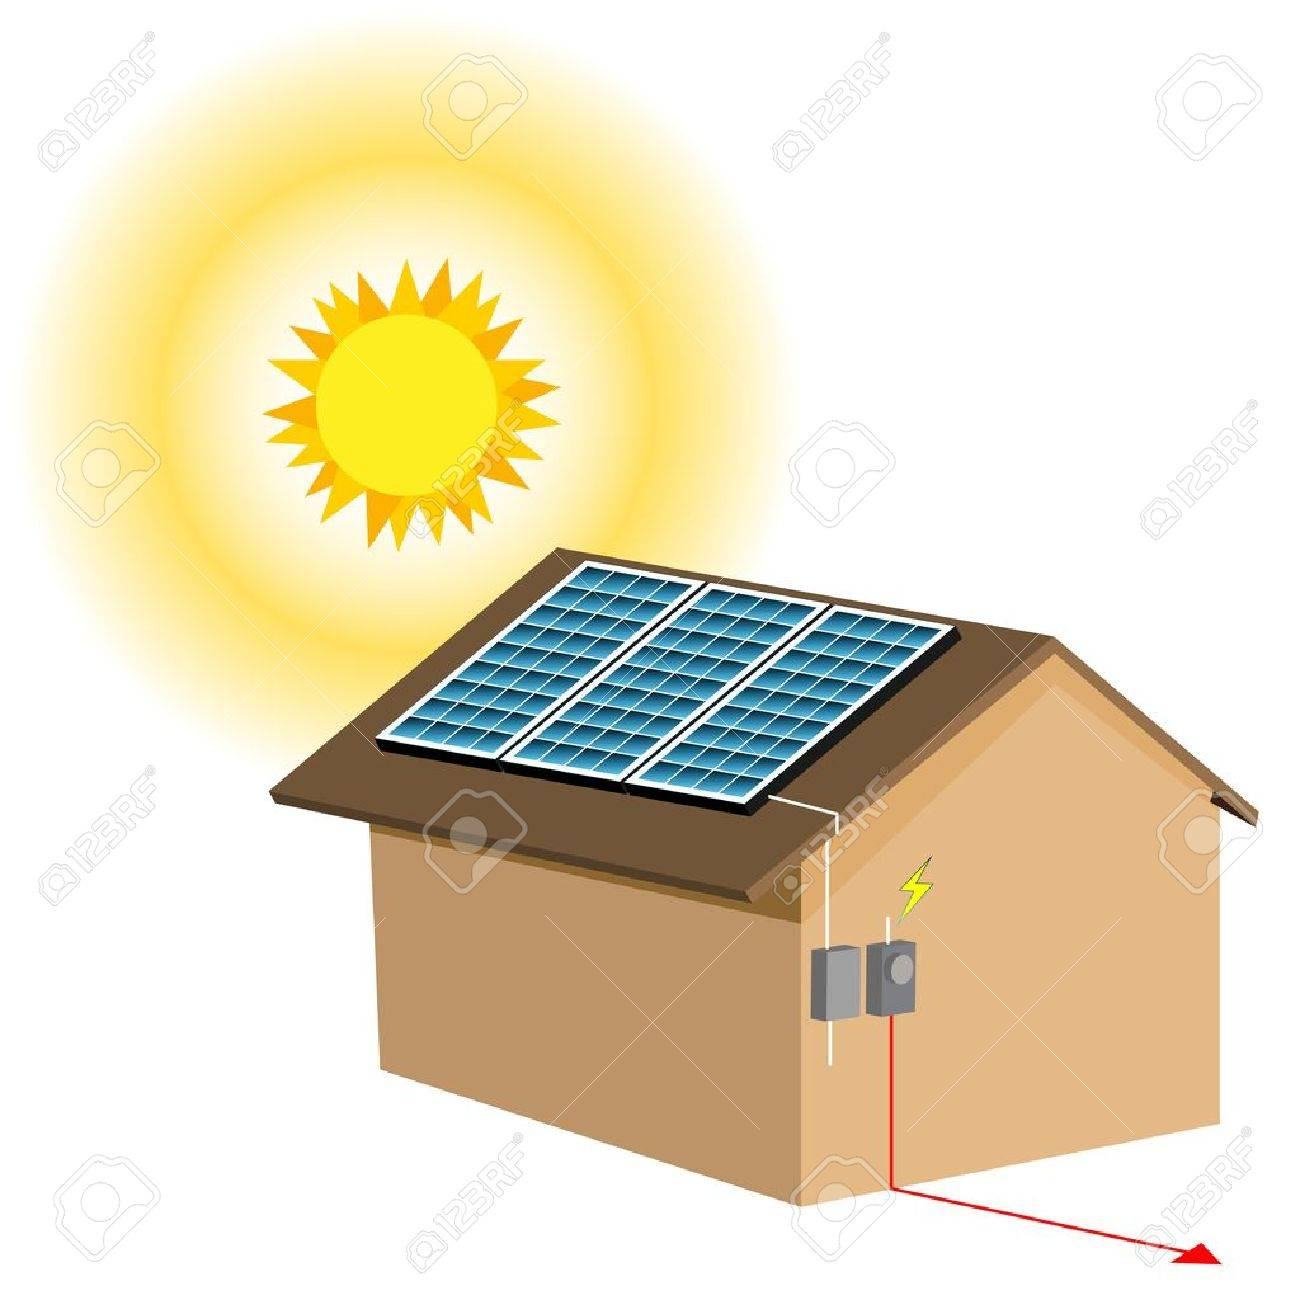 Solar Energy Panels Clipart.